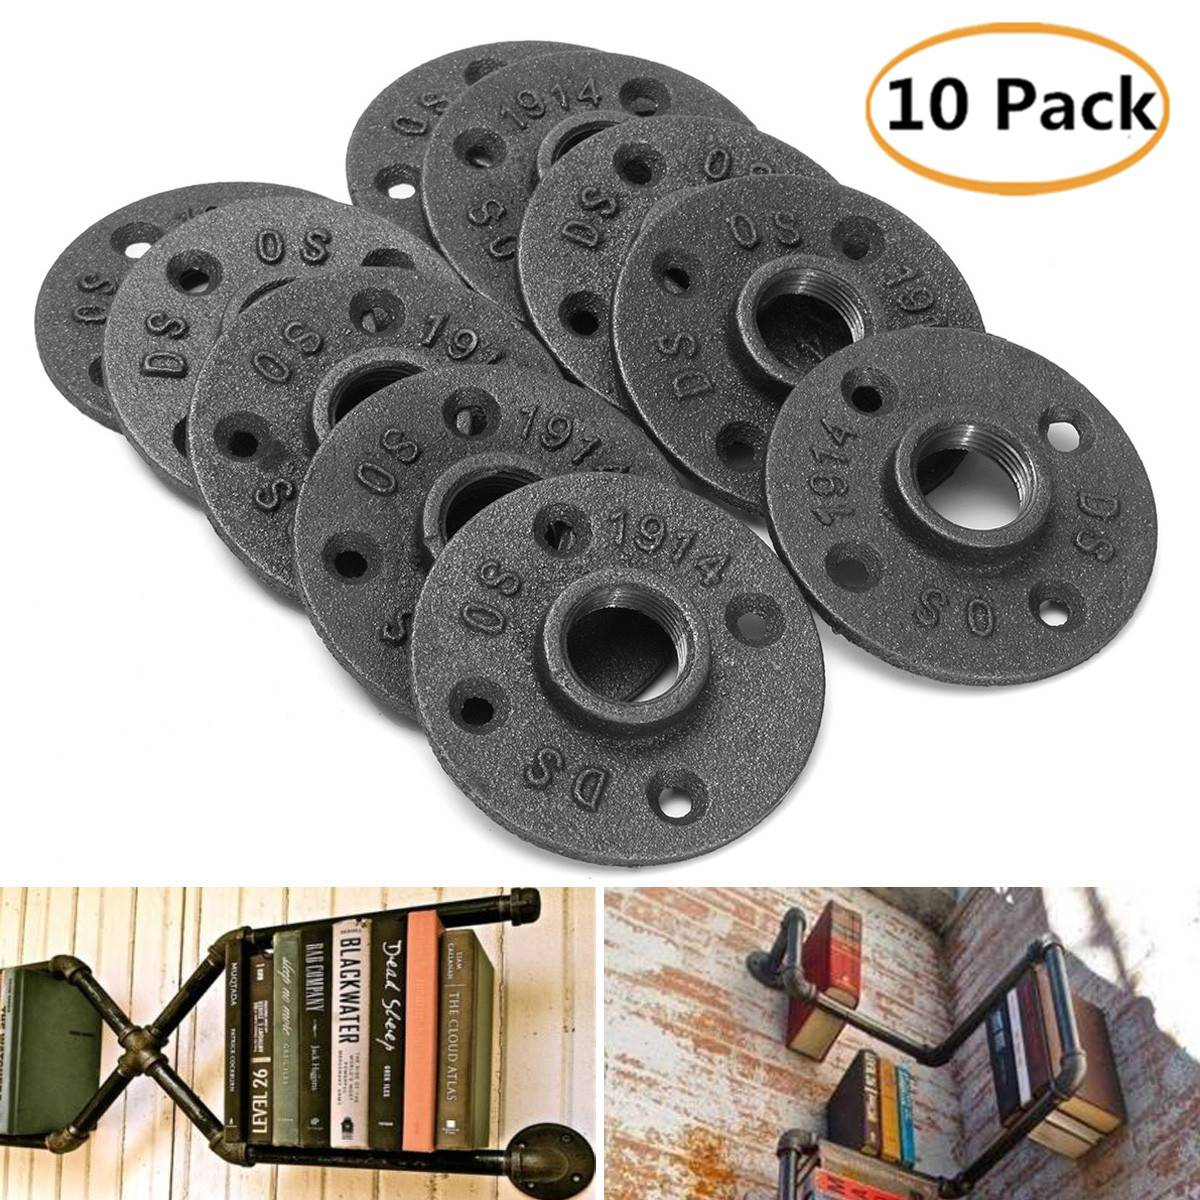 10pcs 3/4 Exhaust Wall Mount Floor Flanges Cast Iron Flanges Thread Malleable Industrial Pipe Fittings Bathroom Shelves Tools